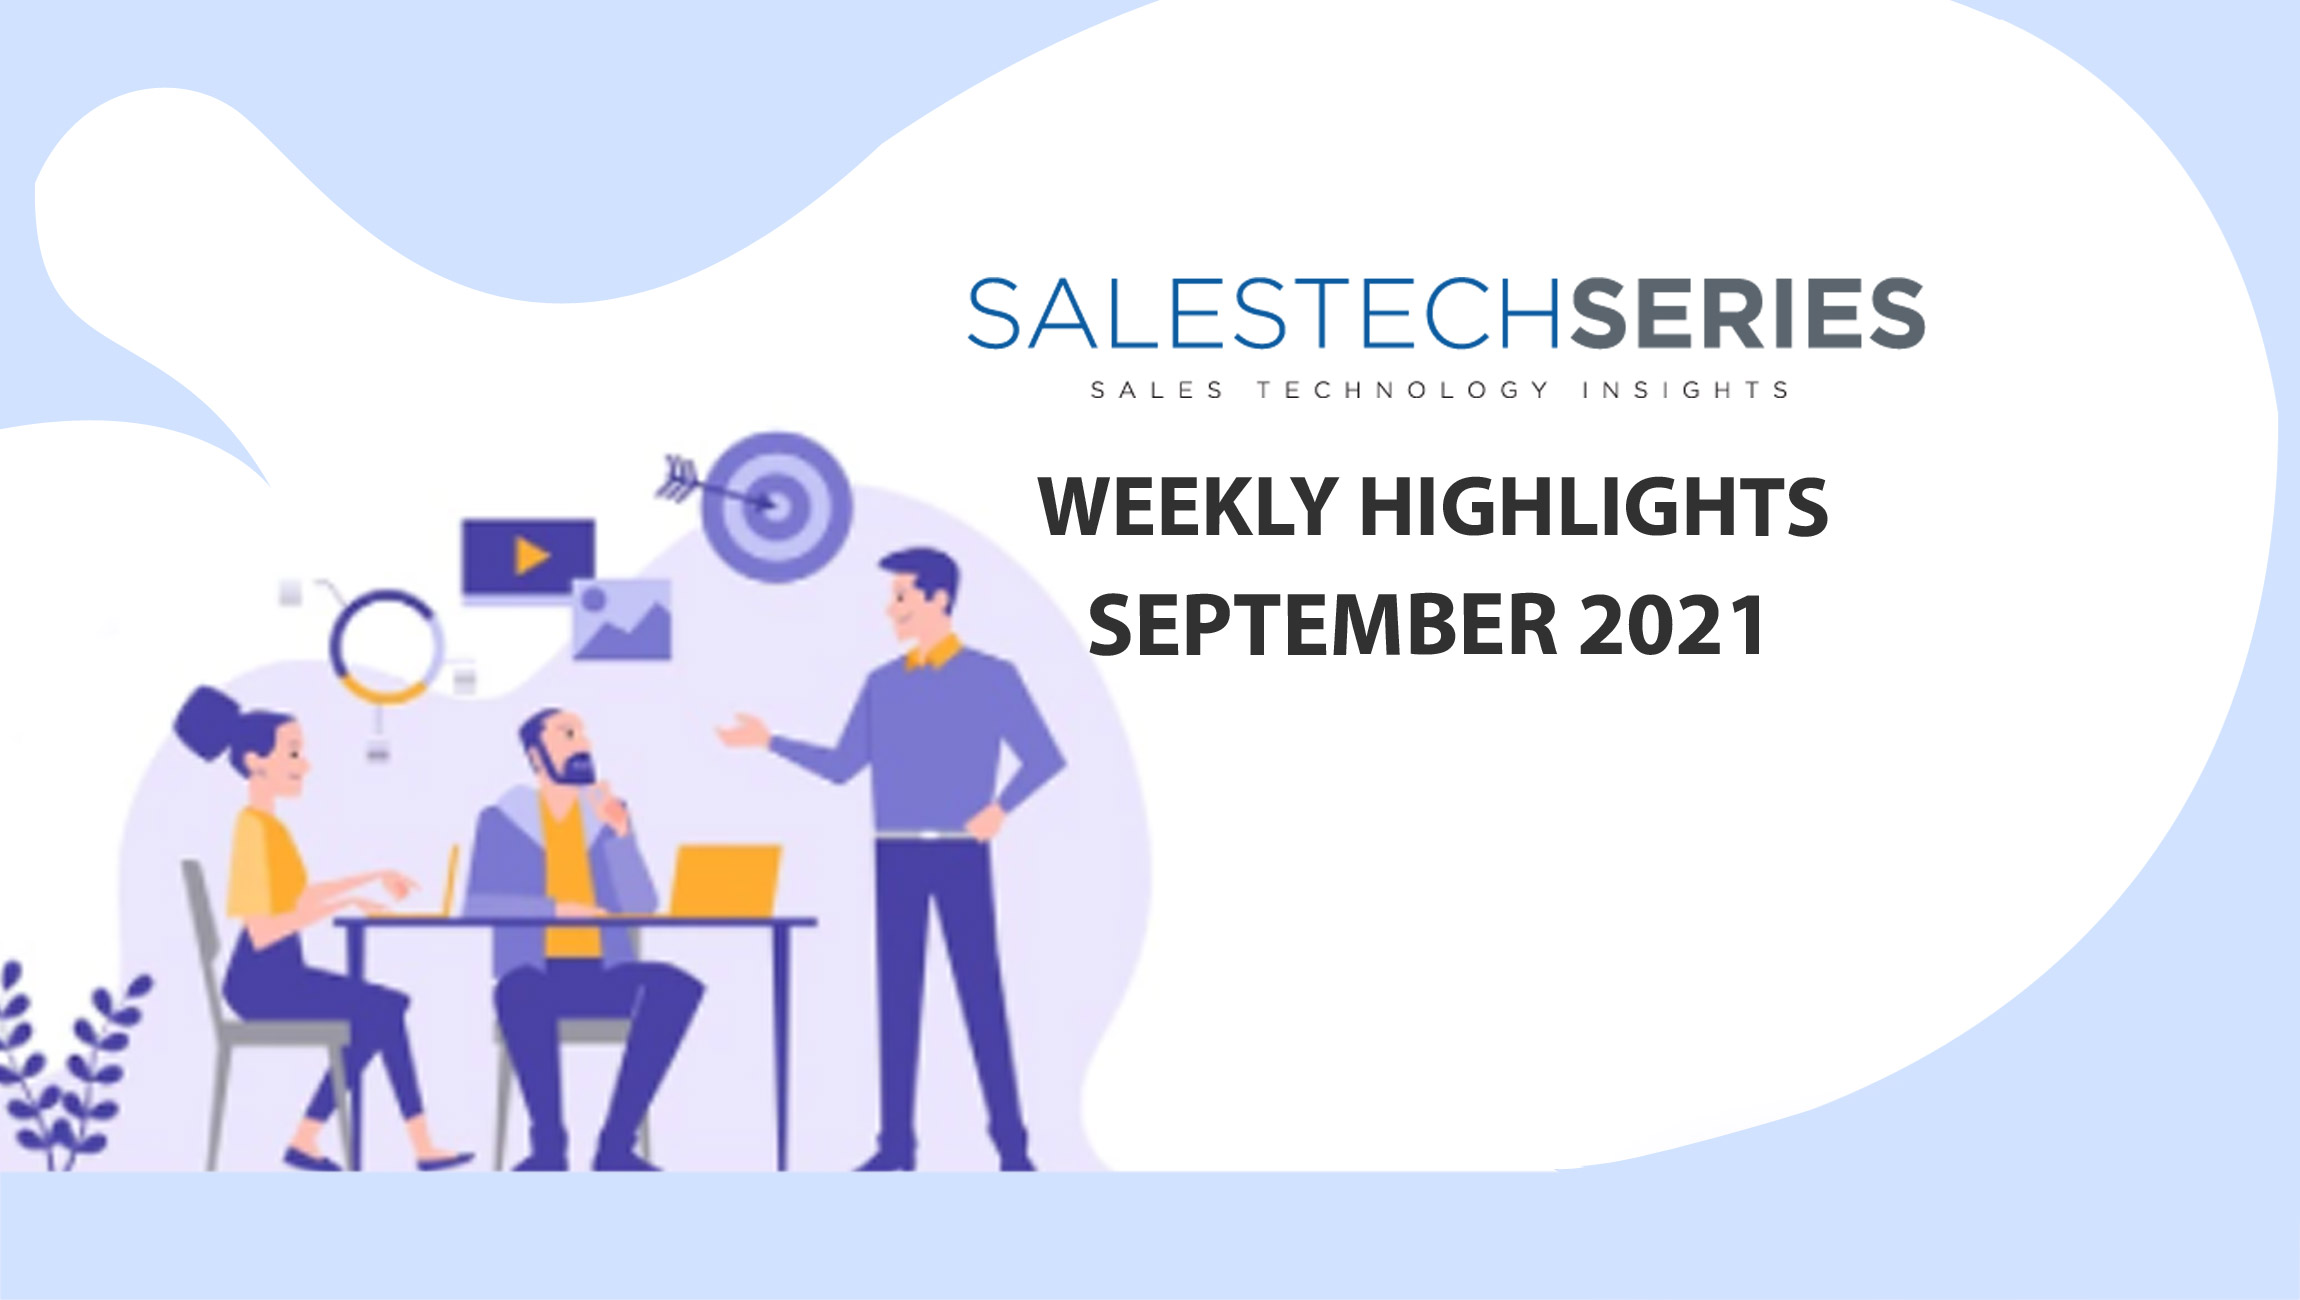 SalesTechStar's Sales Technology Highlights of The Week: Featuring Chili Piper, Clari, Spiff, LogMeIn and more!